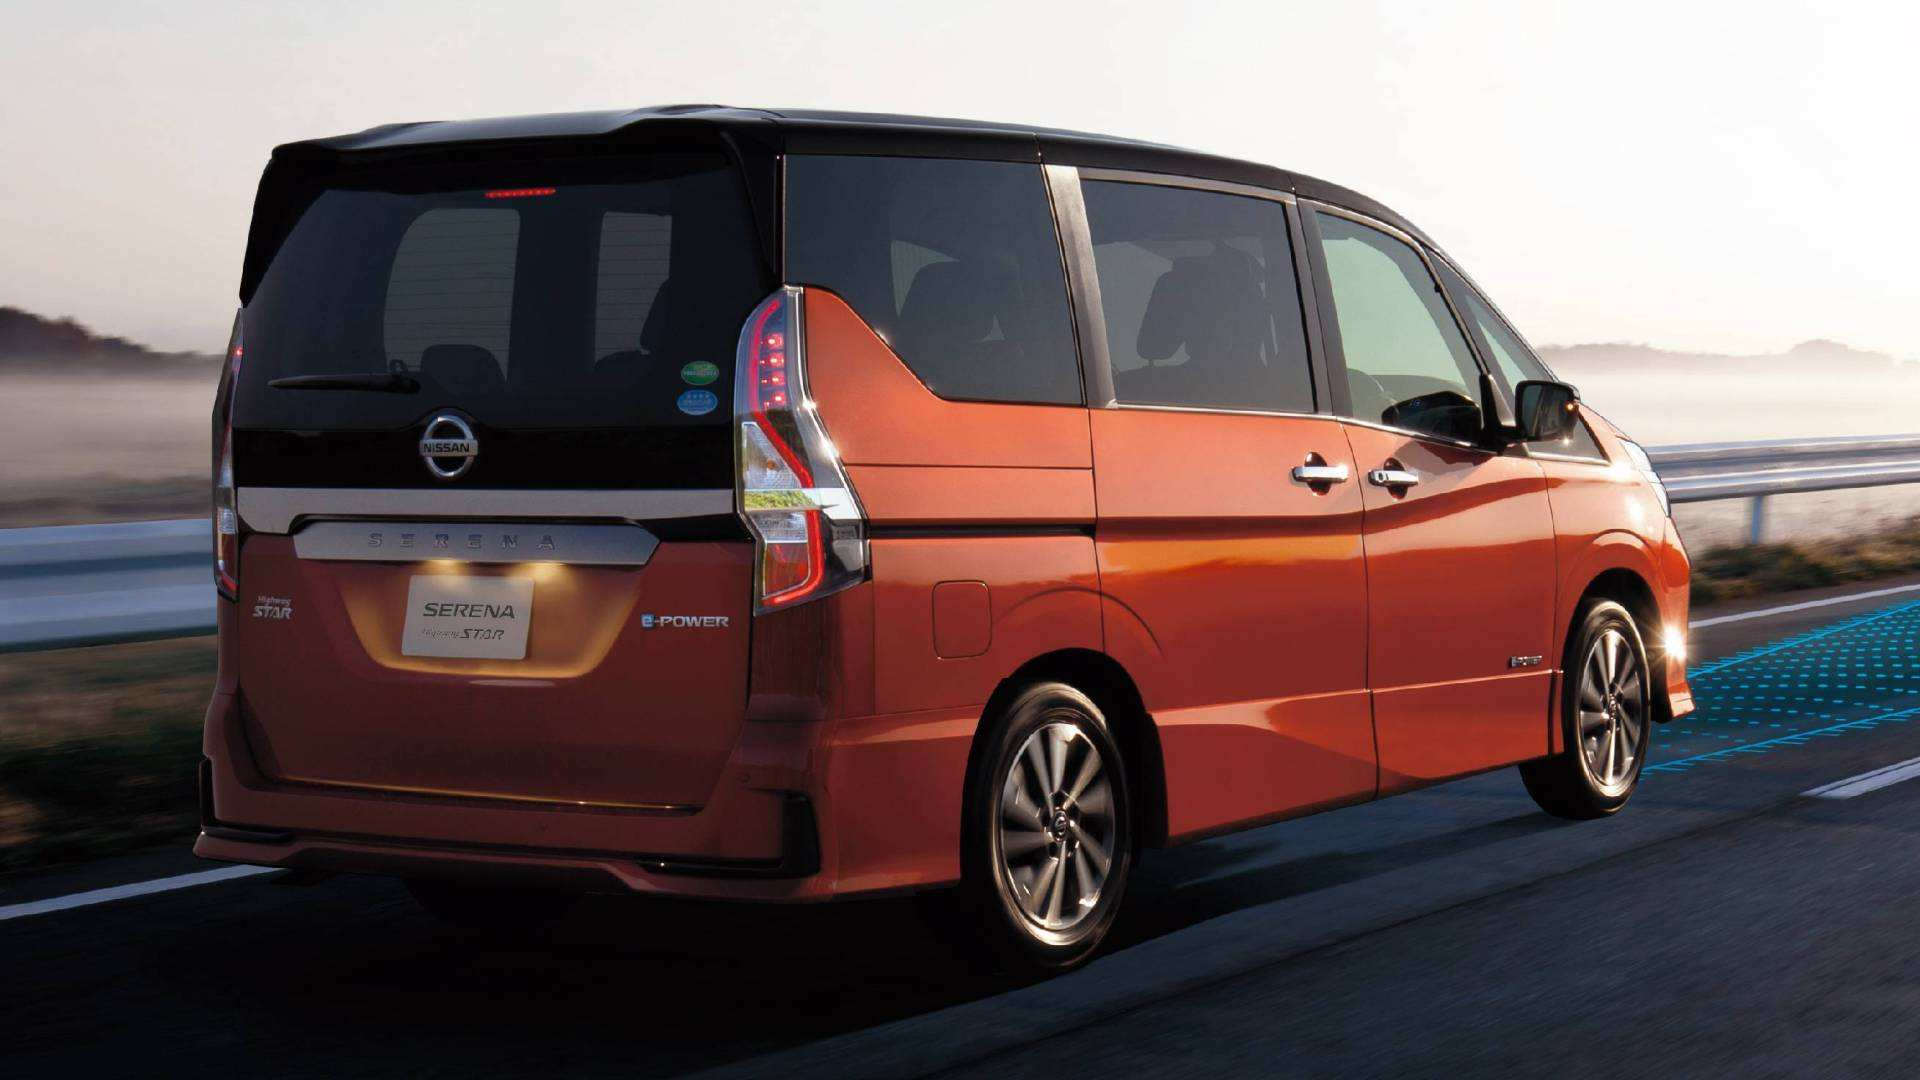 35 Concept of Nissan Serena 2020 Review for Nissan Serena 2020